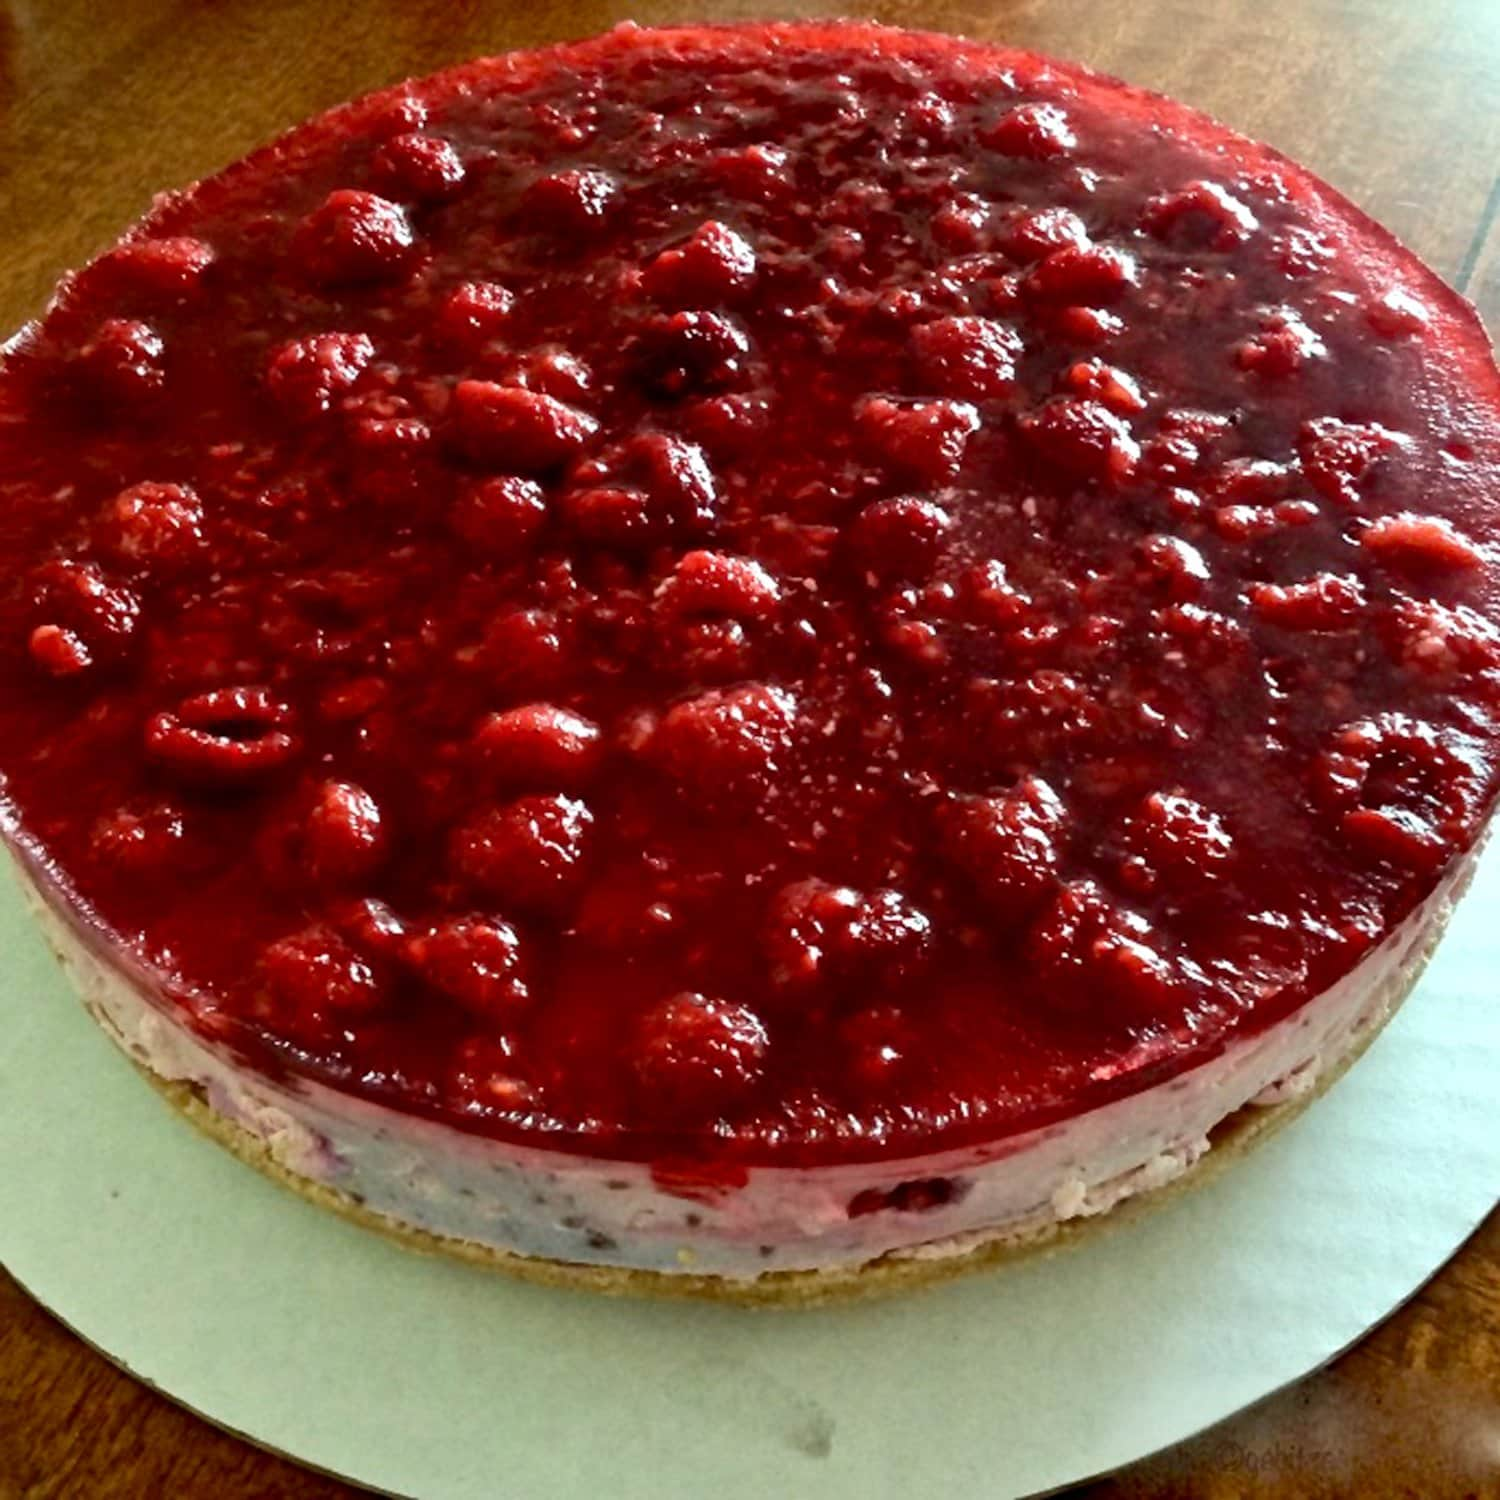 No Bake Cheesecake with Berries5